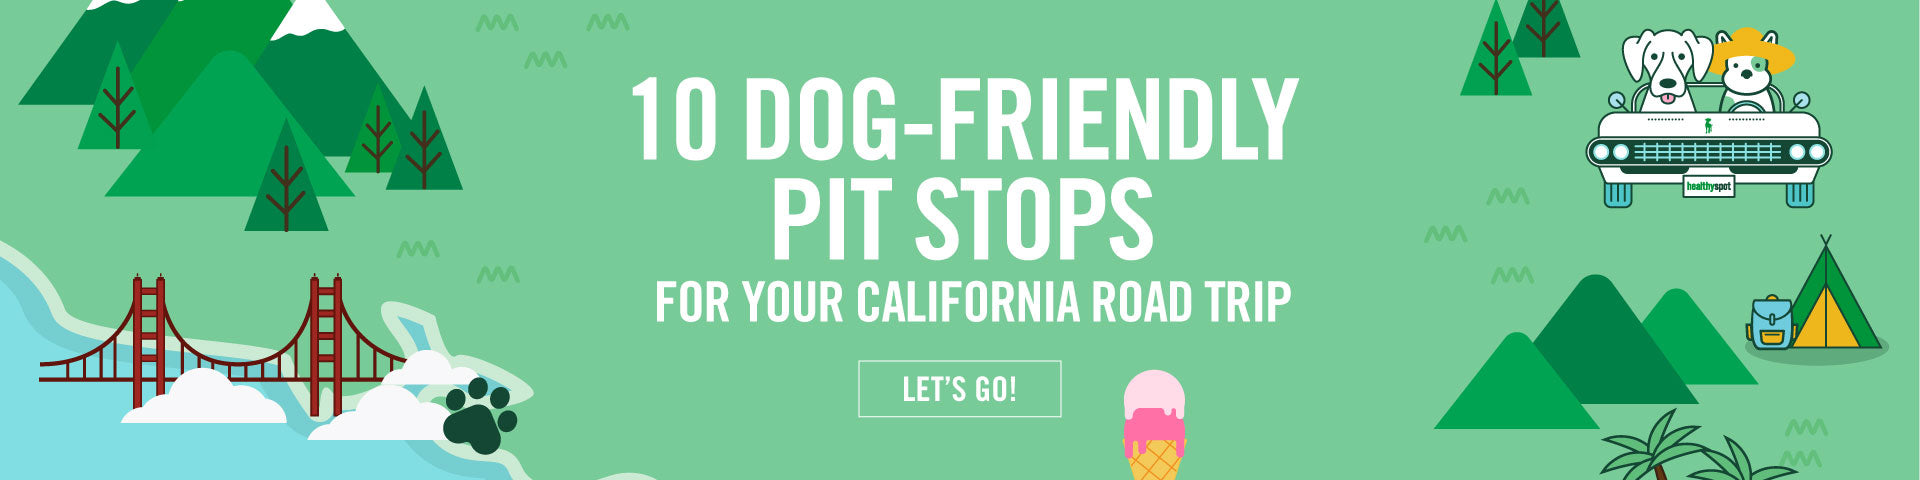 10 Dog-Friendly Pit Stops